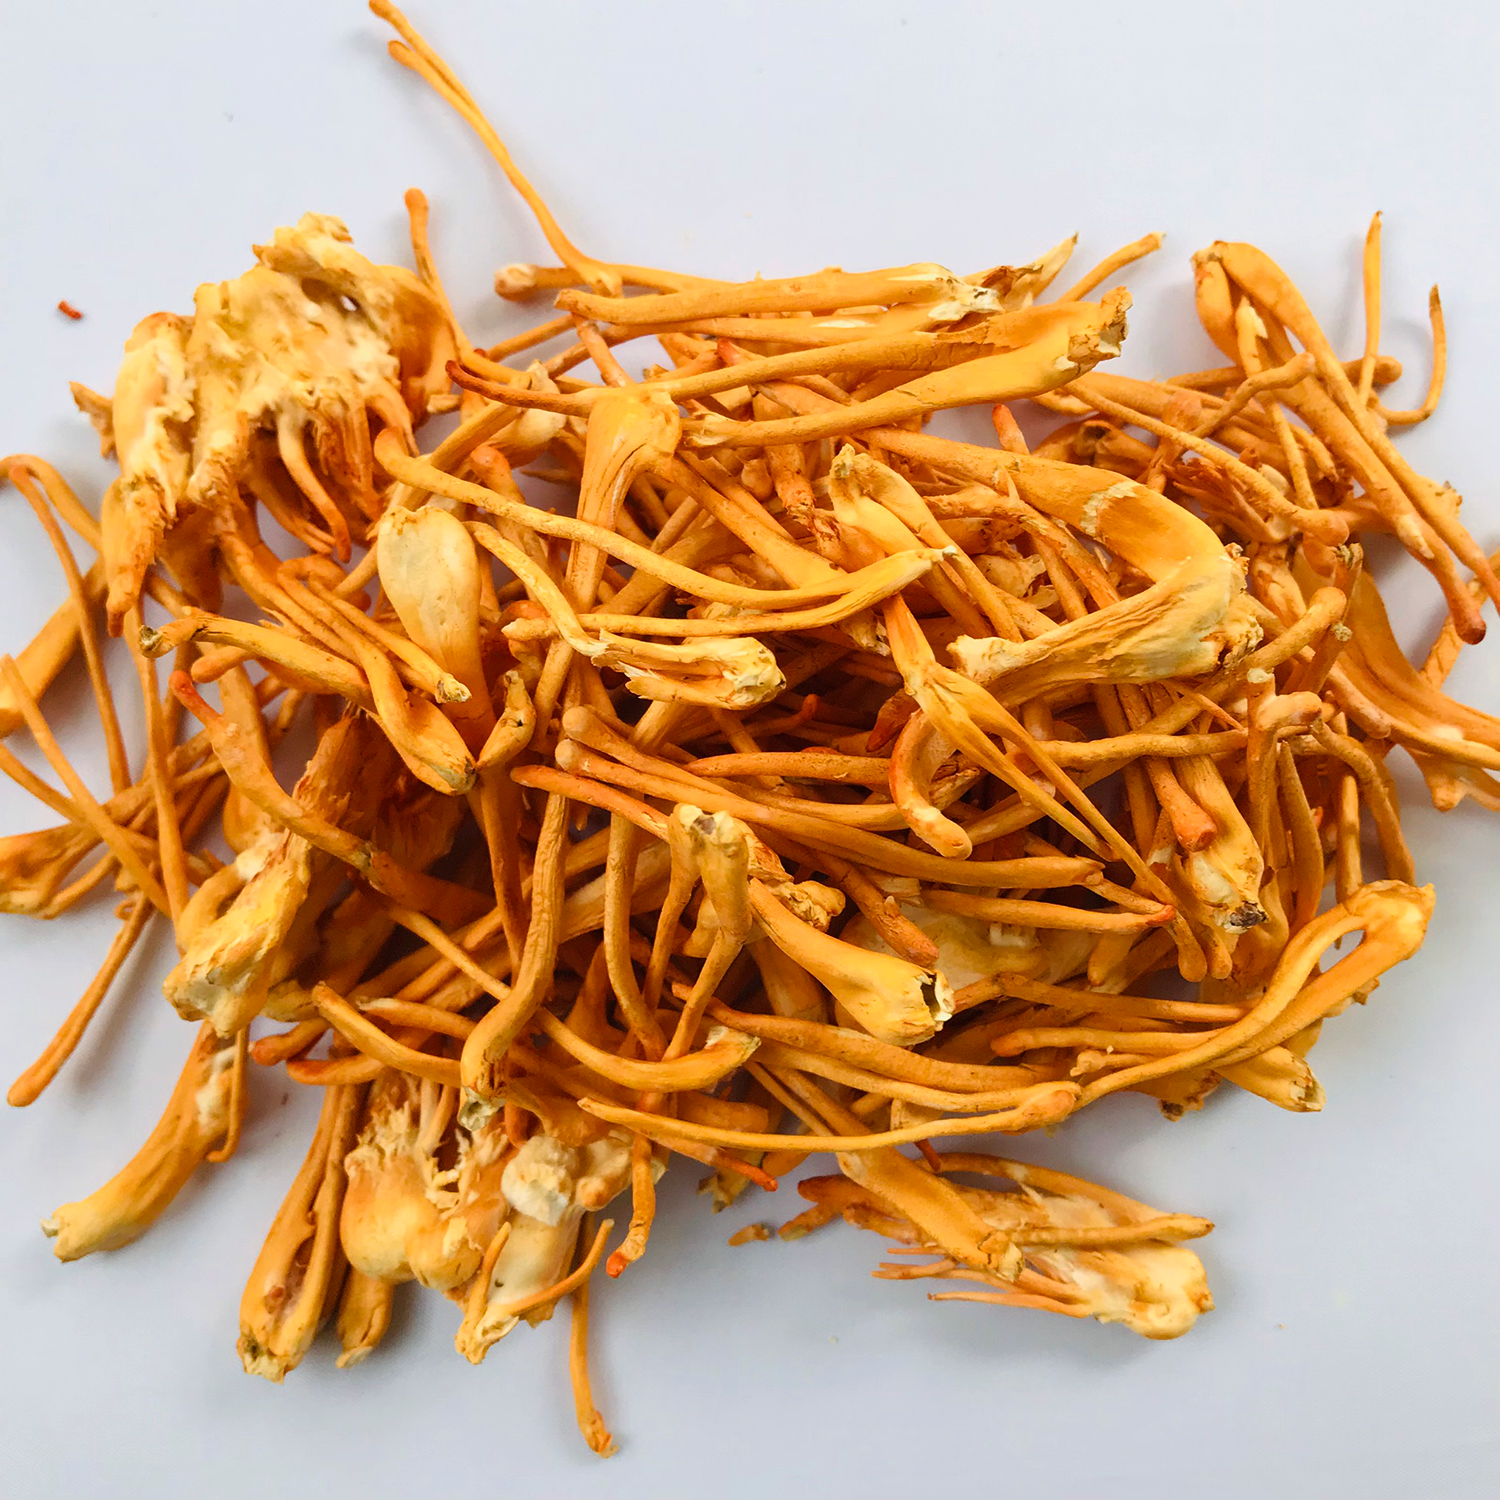 Cordyceps Mushroom Healthy Product 100% Natural Herbal High Quality Product Good For Health Providing Energy OEM V-Store